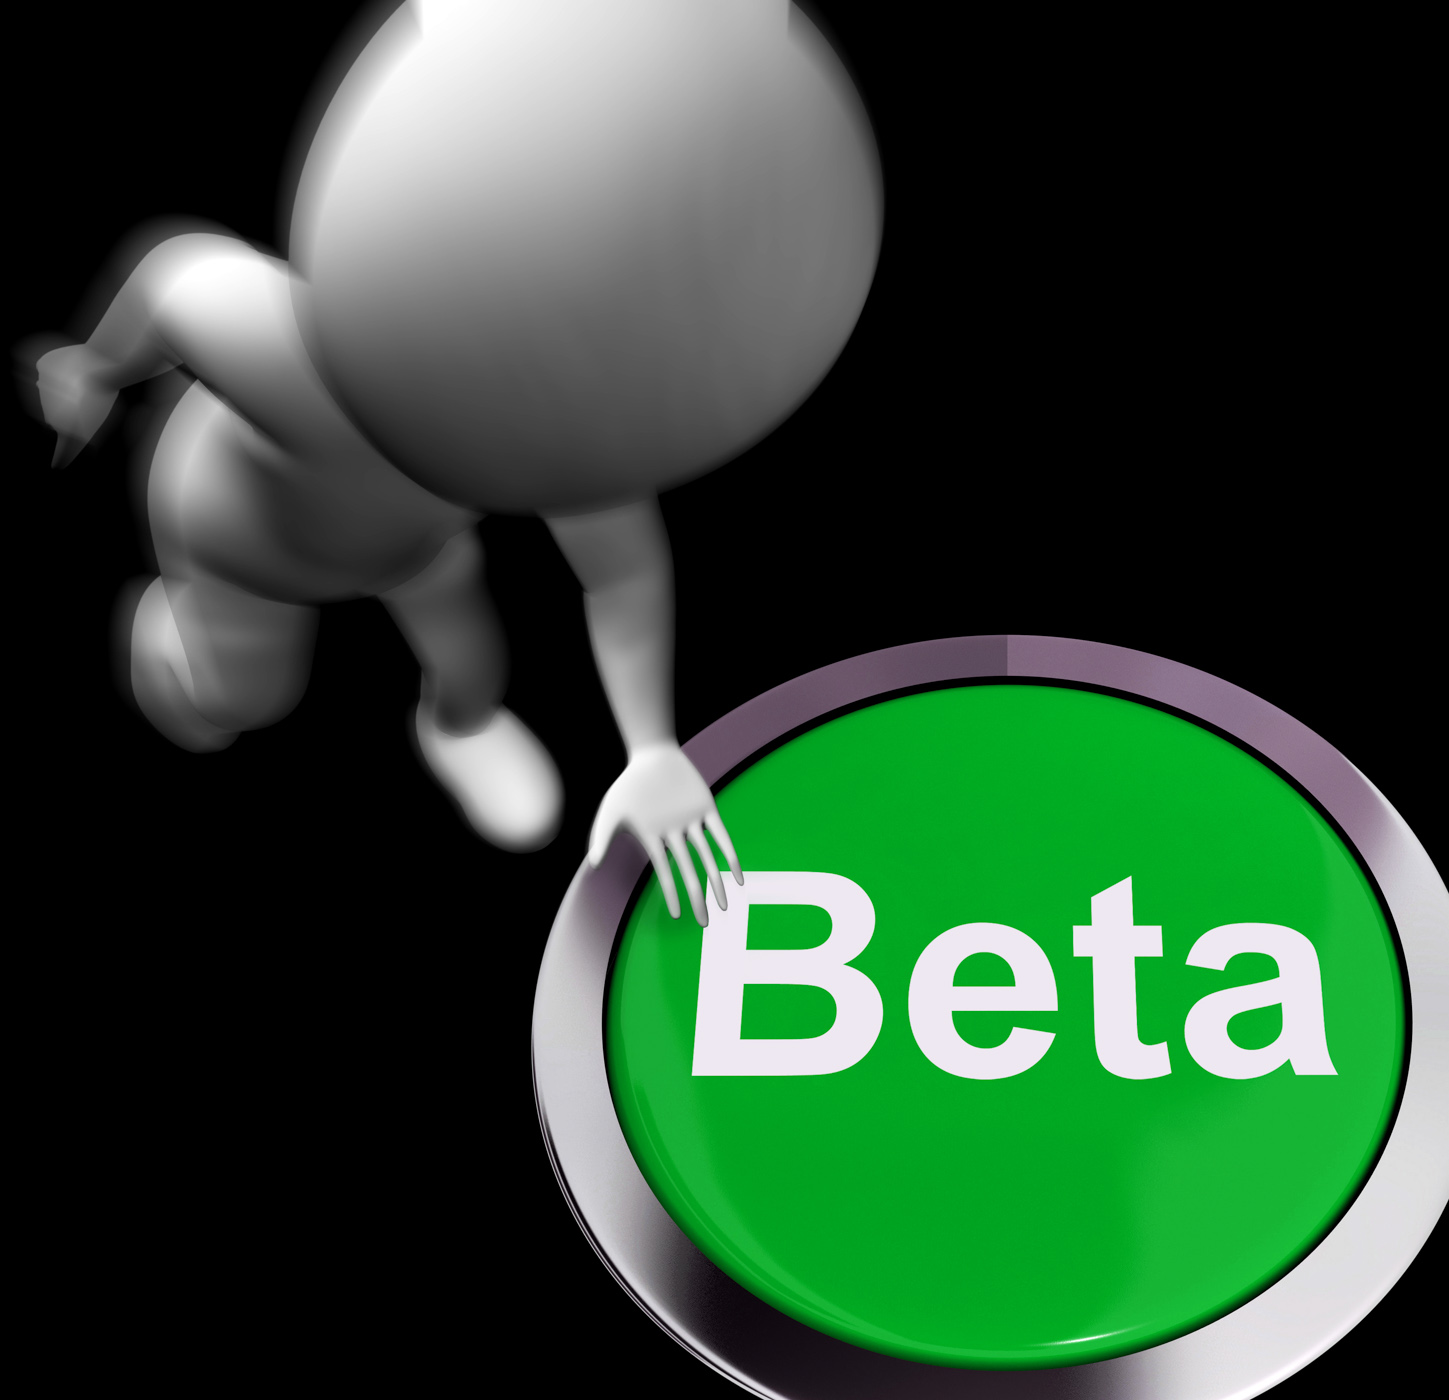 Beta pressed shows software testing and development photo